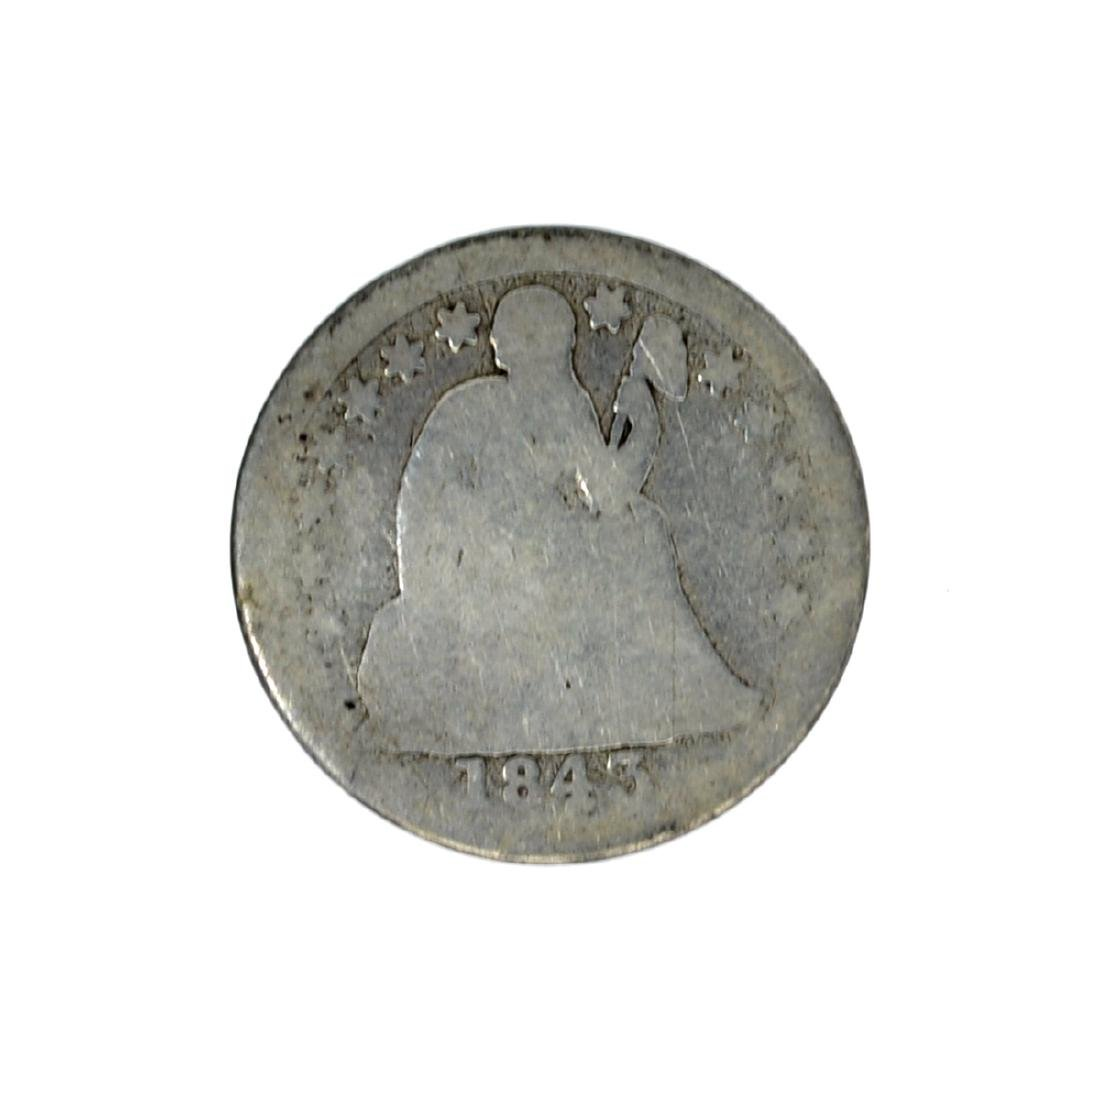 1843 Liberty Seated Dime Coin